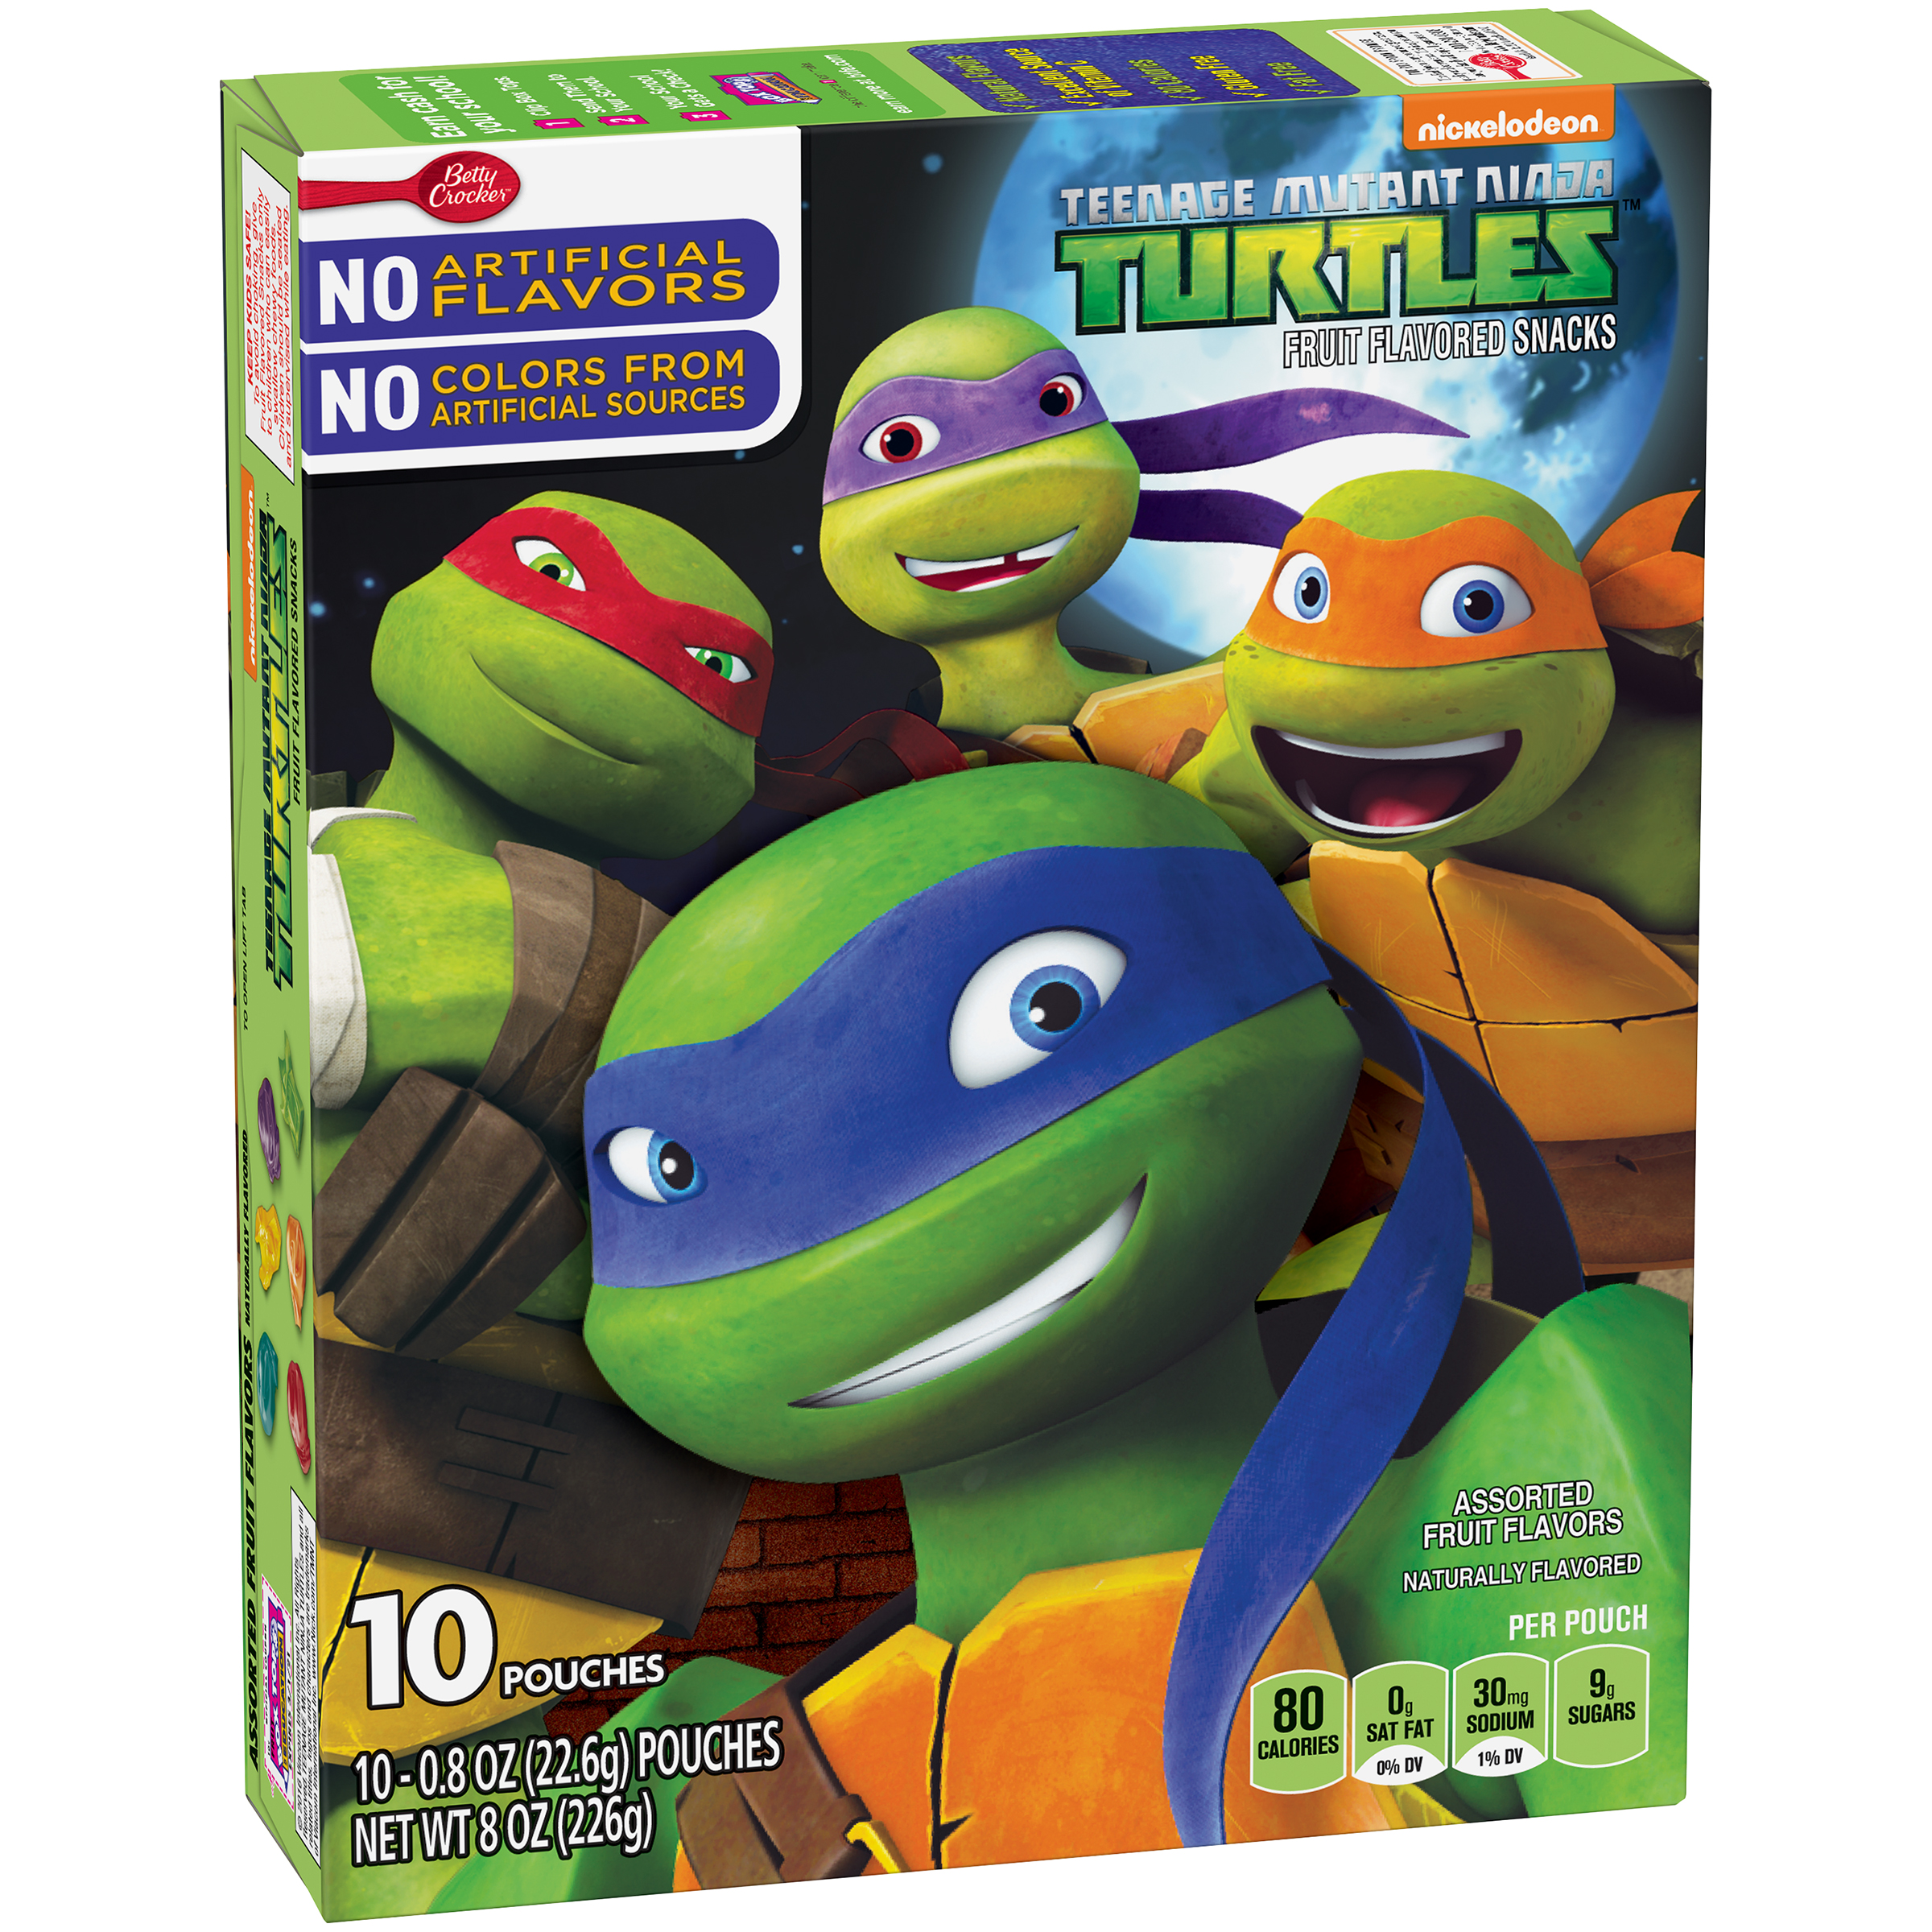 Betty Crocker�� Teenage Mutant Ninja Turtles Fruit Flavored Snacks Assorted Flavors 10 - 0.8 oz Pouches